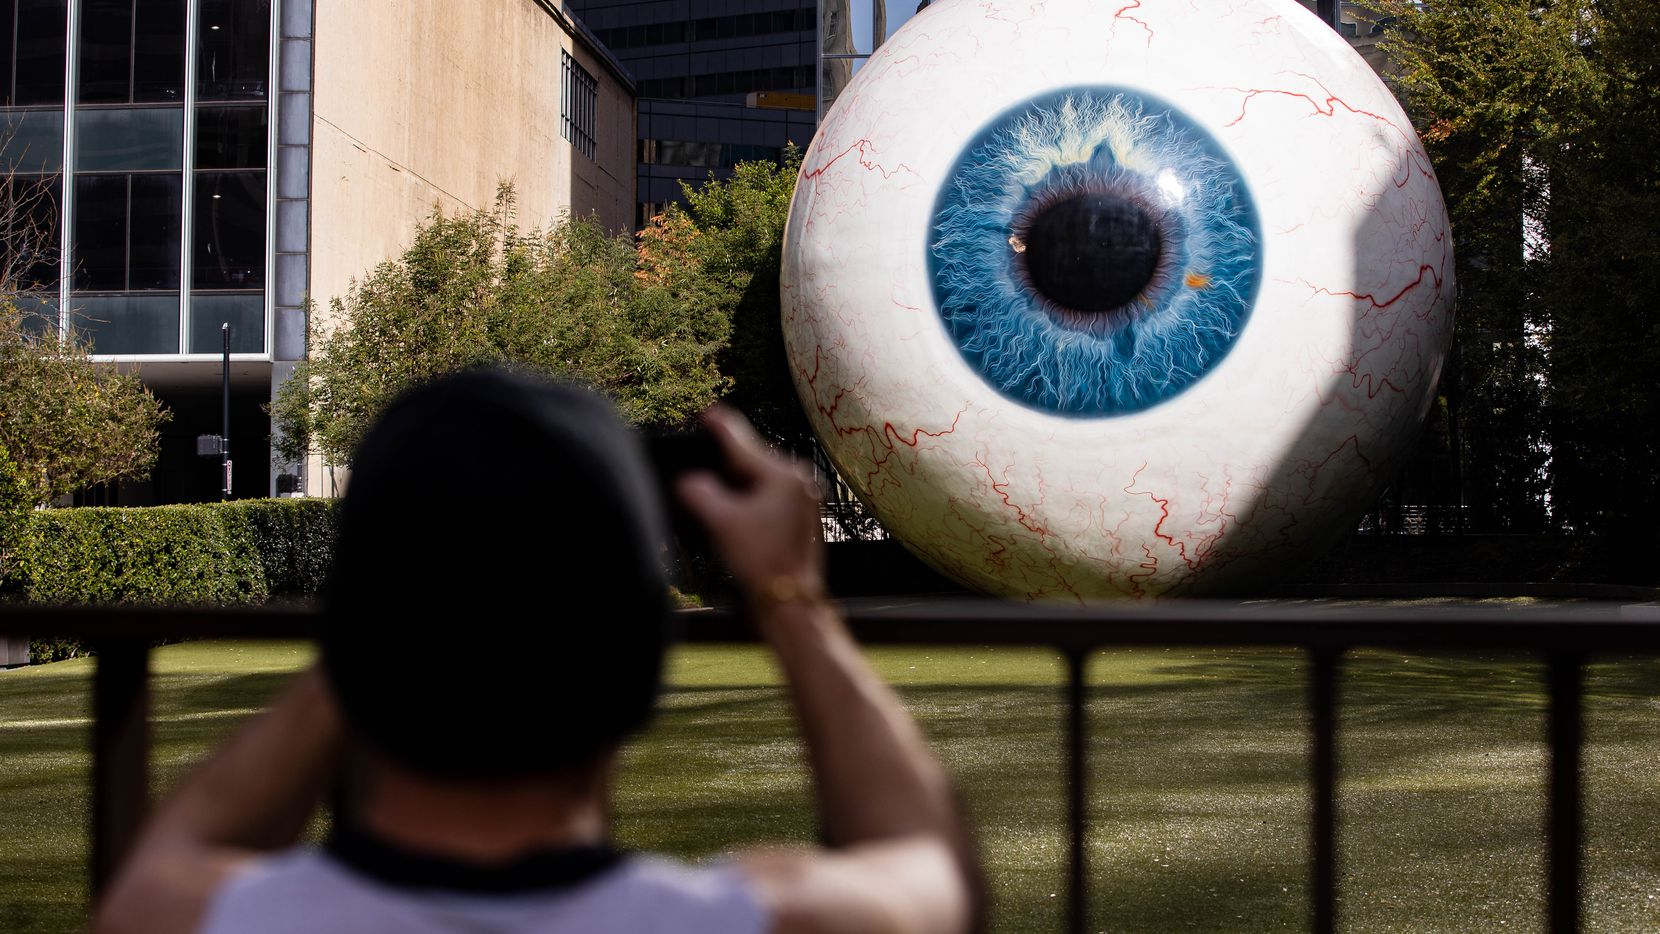 """Artist Tony Tasset's giant eyeball sculpture, """"Eye,"""" has been a popular attraction in Dallas since its debut in 2013. It was damaged on the night of May 29, when protesters tagged it with graffiti in the wake of George Floyd's death at the hands of Minneapolis police."""